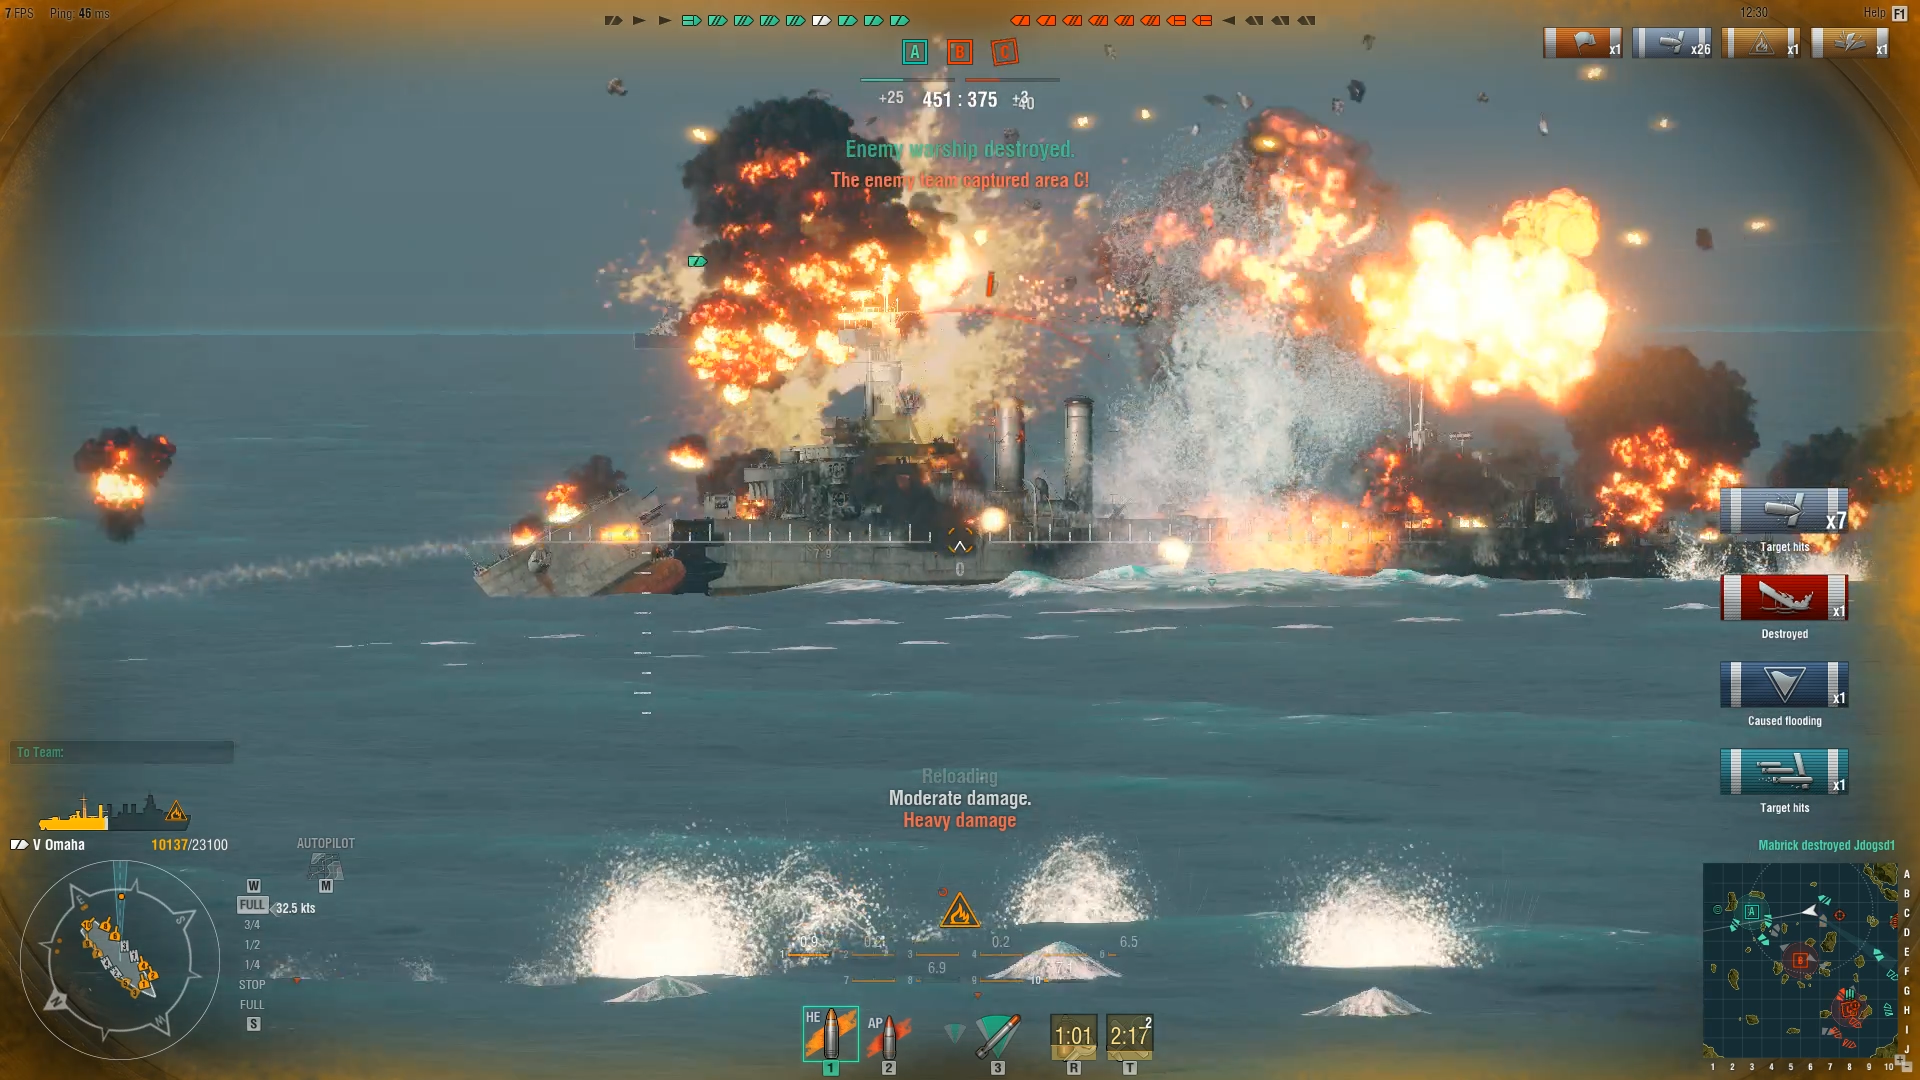 Taking Out Another Omaha with Torpedos